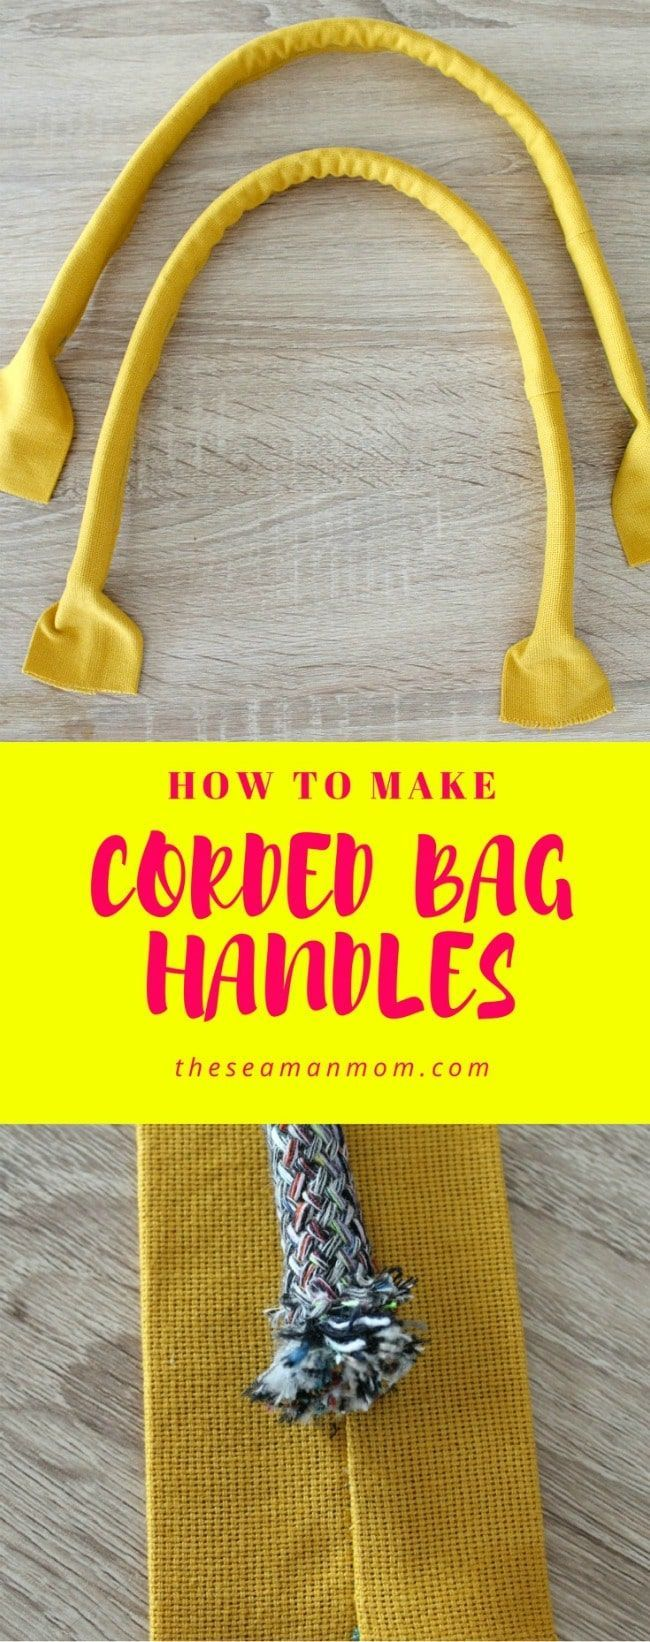 CORDED BAG HANDLES SEWING TUTORIAL -Learn how to sew sturdy handles for handbags… – Easy Peasy Creative Ideas